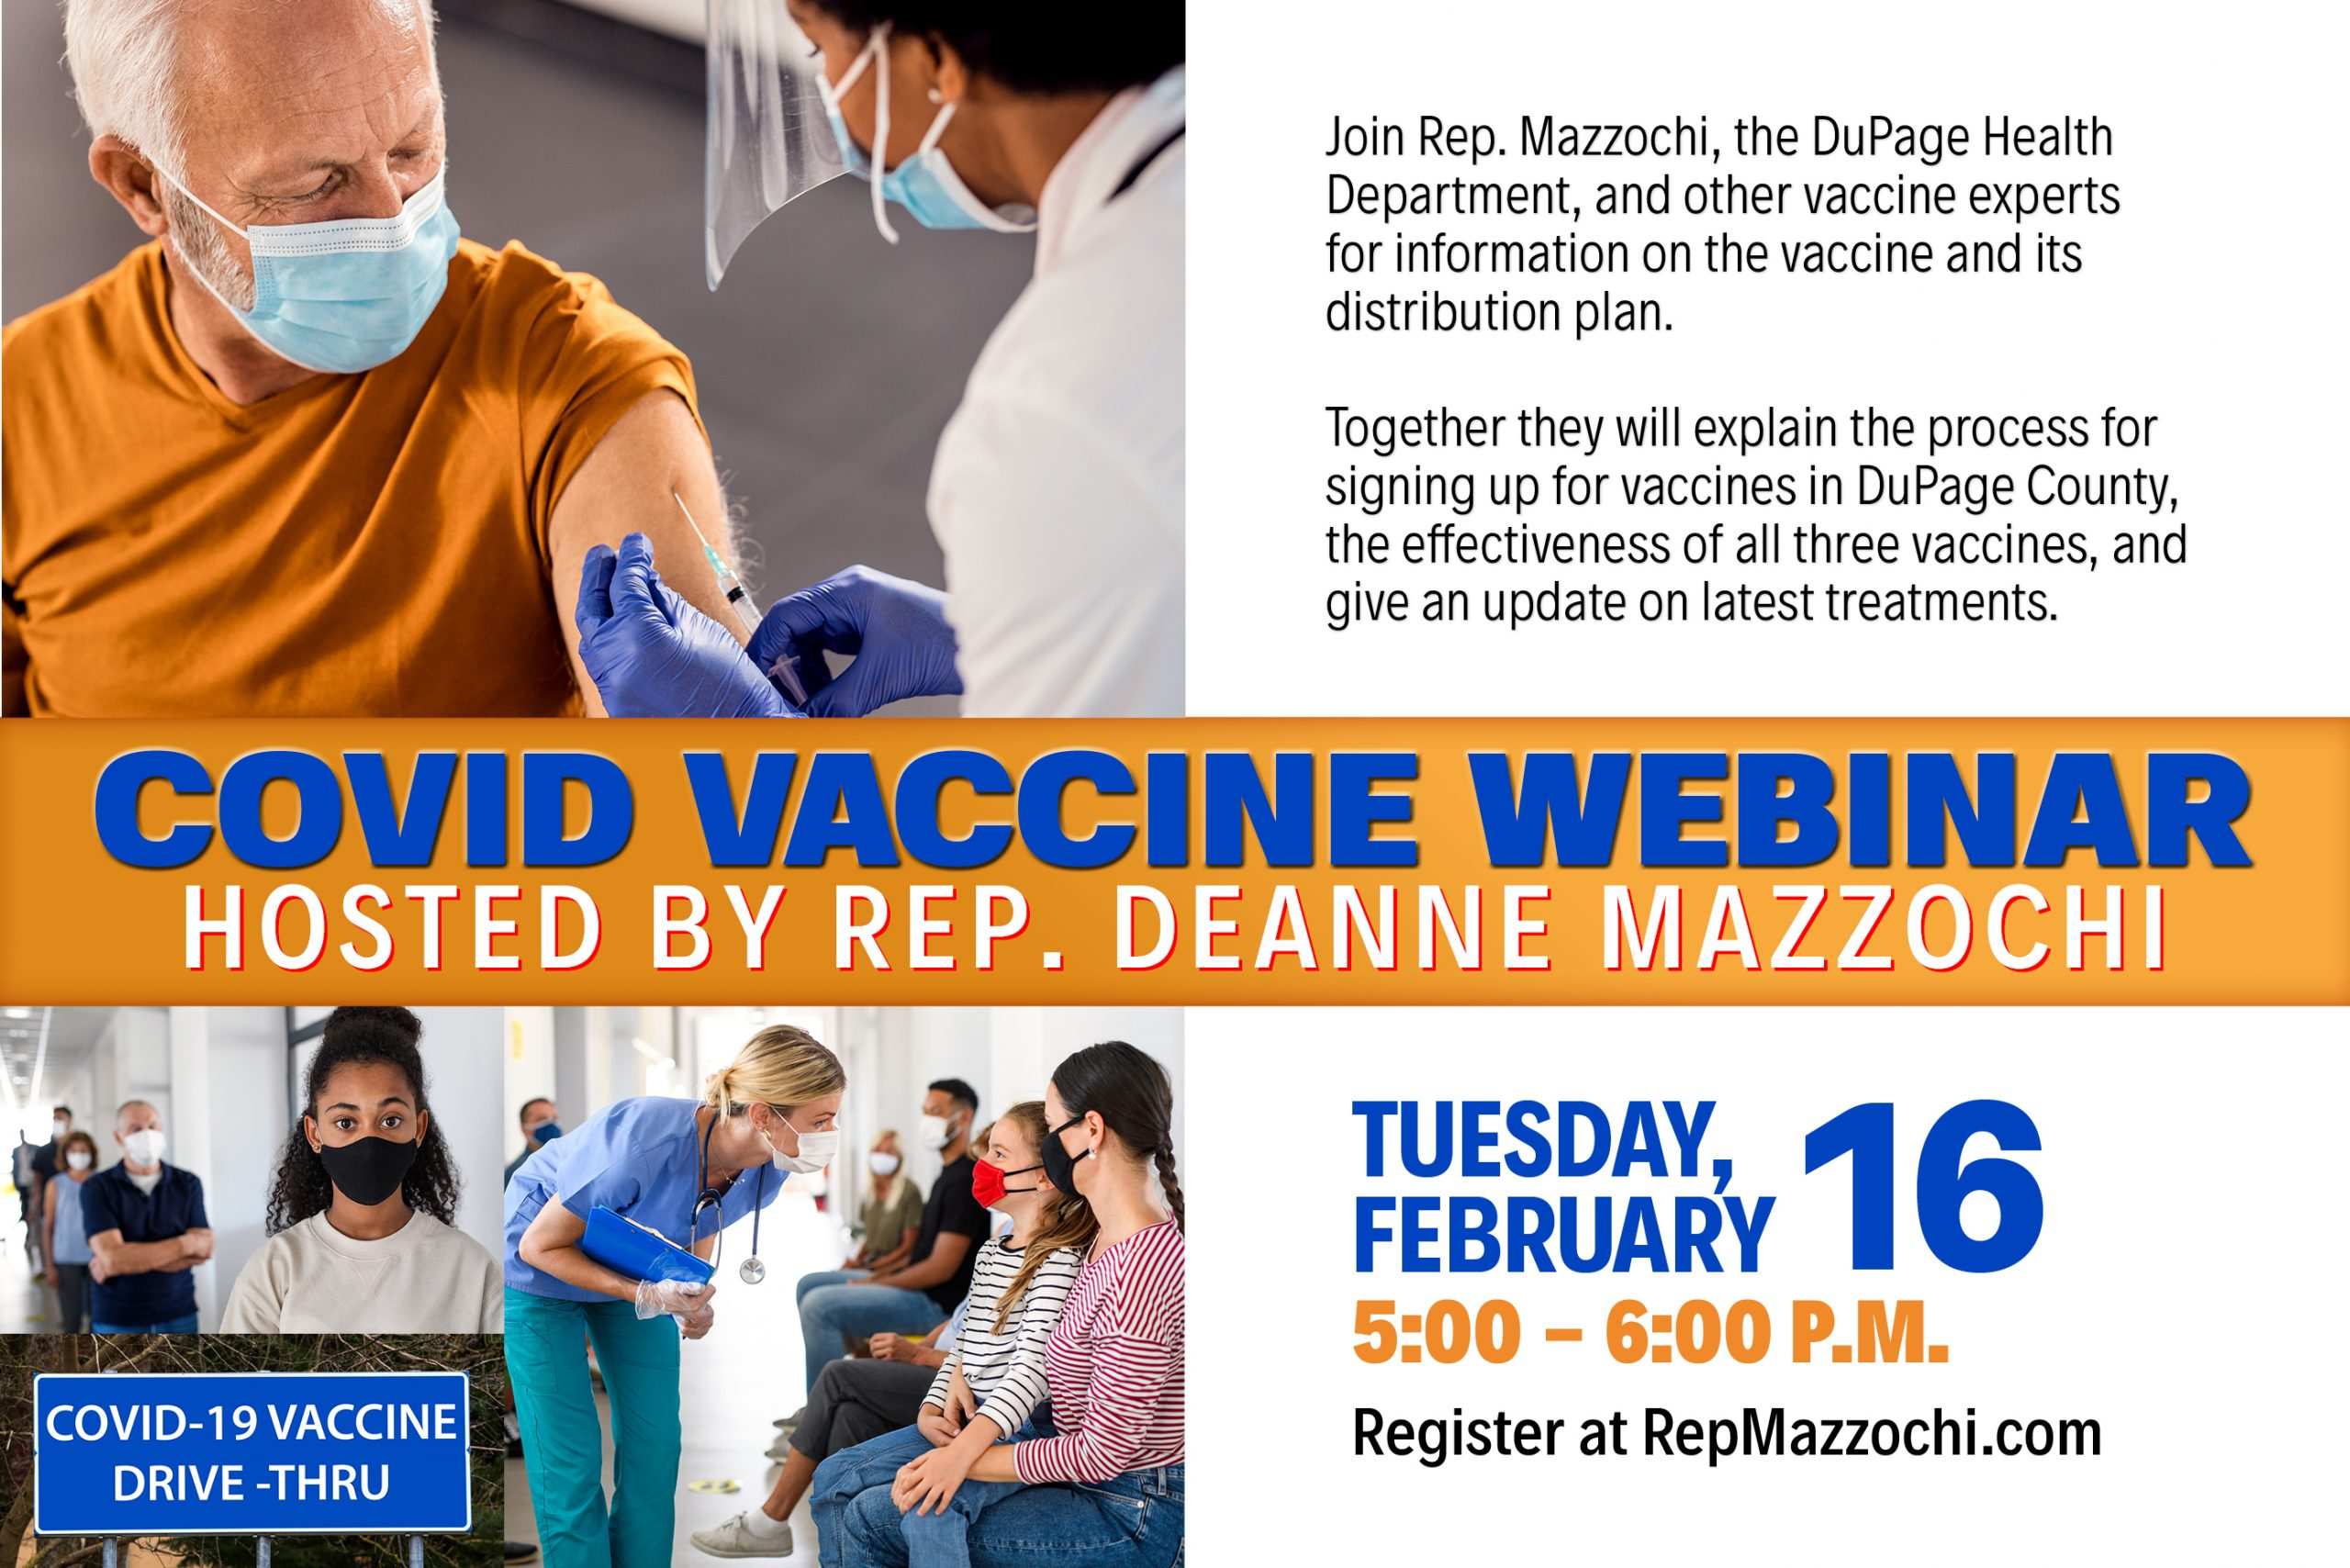 mazzochi-covid-vaccine-webinar-021621-1-scaled